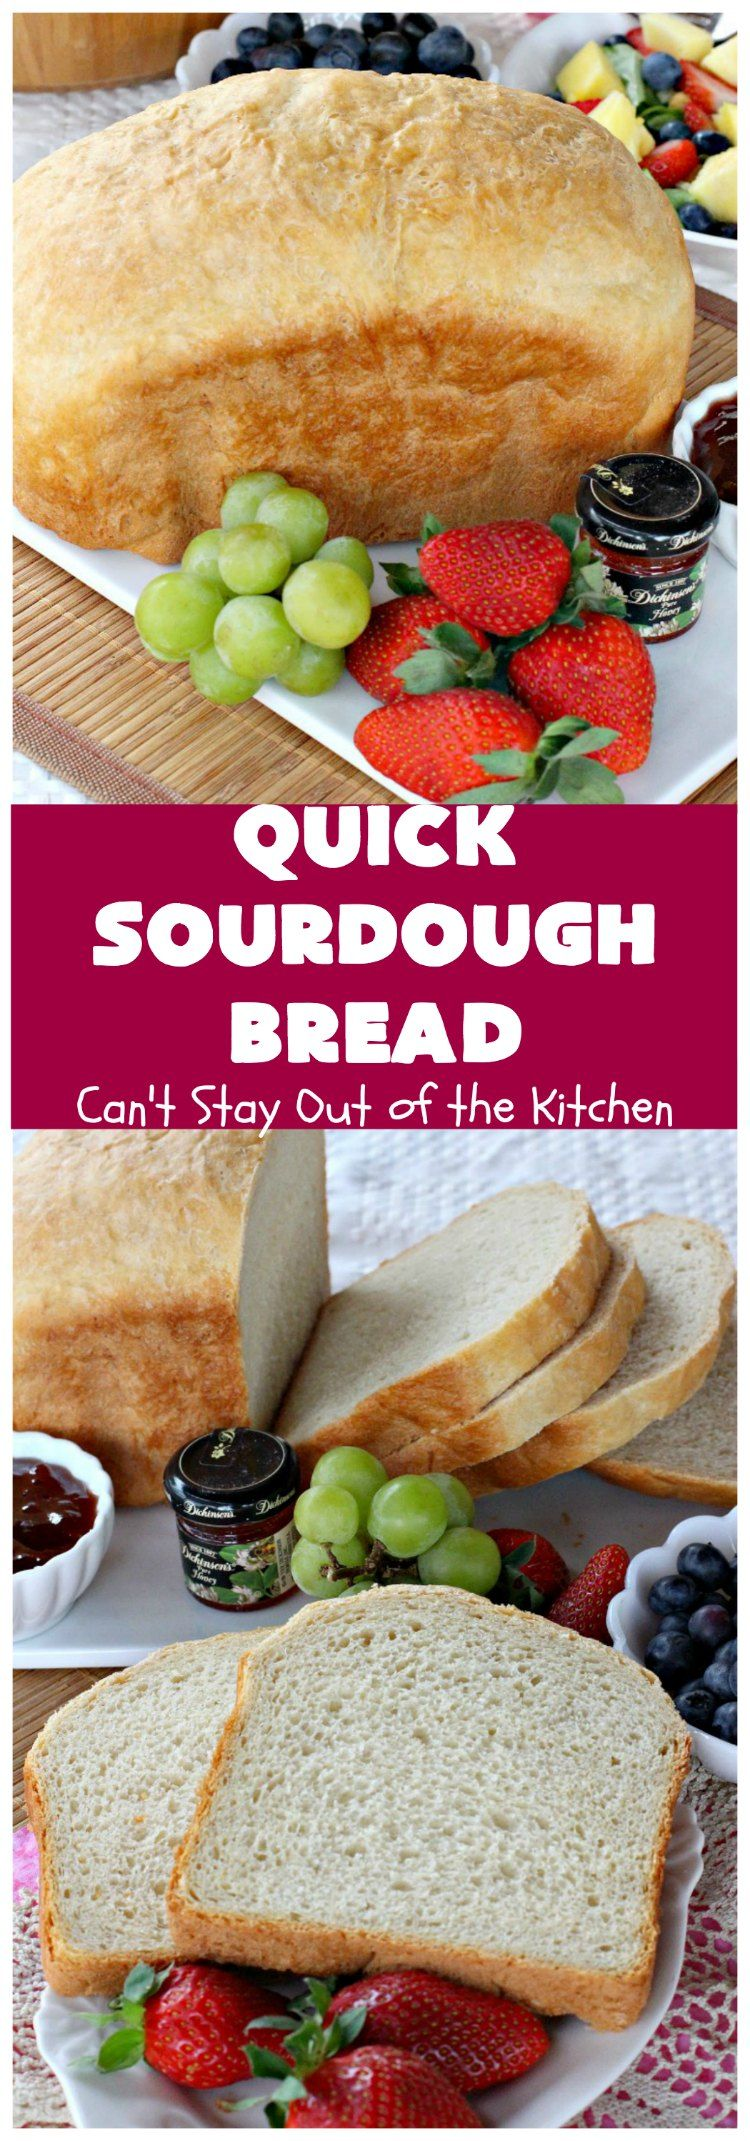 Quick Sourdough Bread Quick Sourdough Bread | Can't Stay Out of the Kitchen | this delicious is so easy since it's made in the You get that great taste with a loaf of this scrumptious We serve it for or dinner.